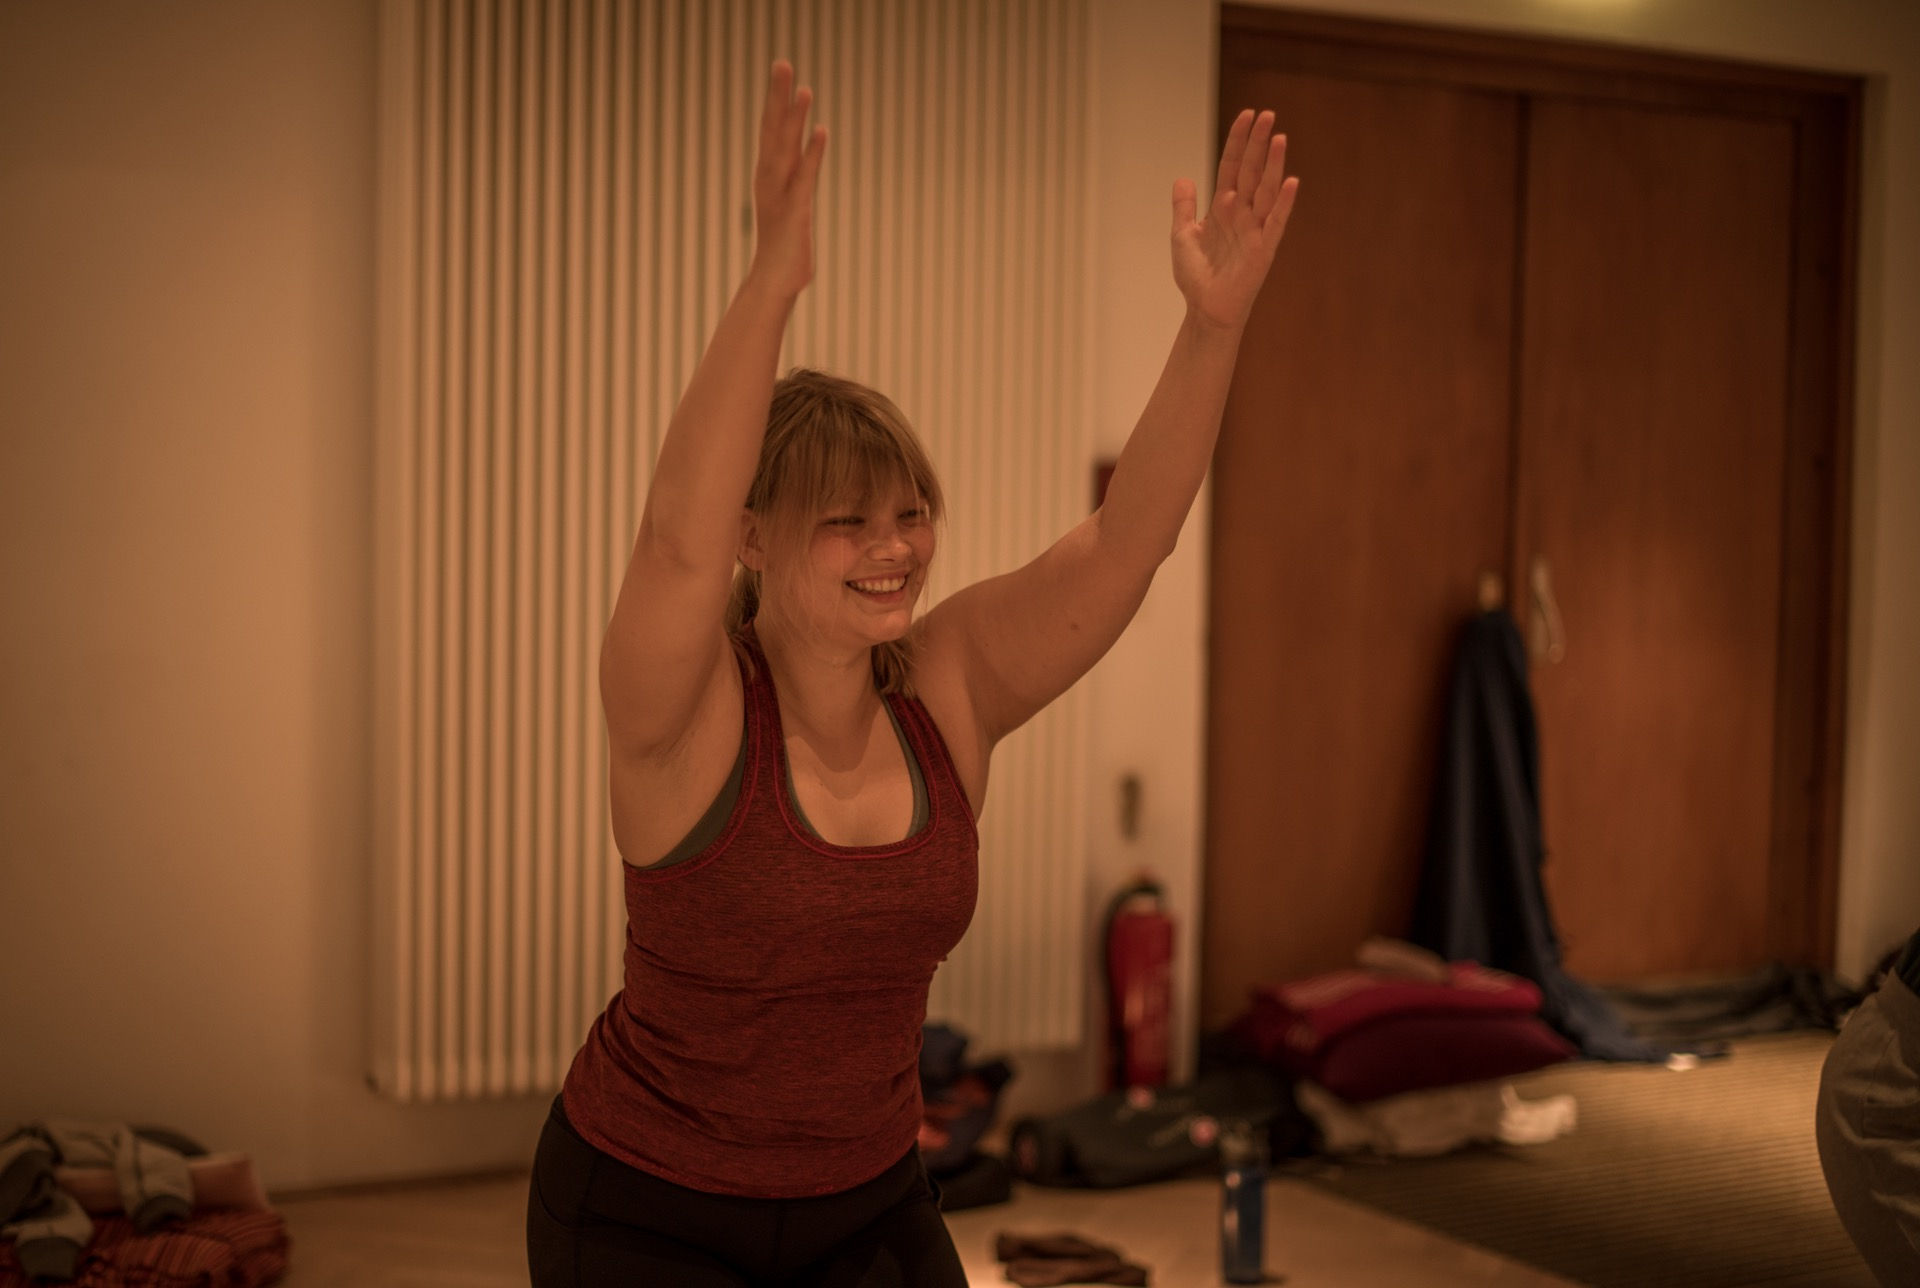 A-New-Beginning-Hie-Kim-Yoga-Retreat-Alina-Matis-Photography-038 - Hie Kim Yoga - Yoga Retreat - Yoga Workshops und Reisen